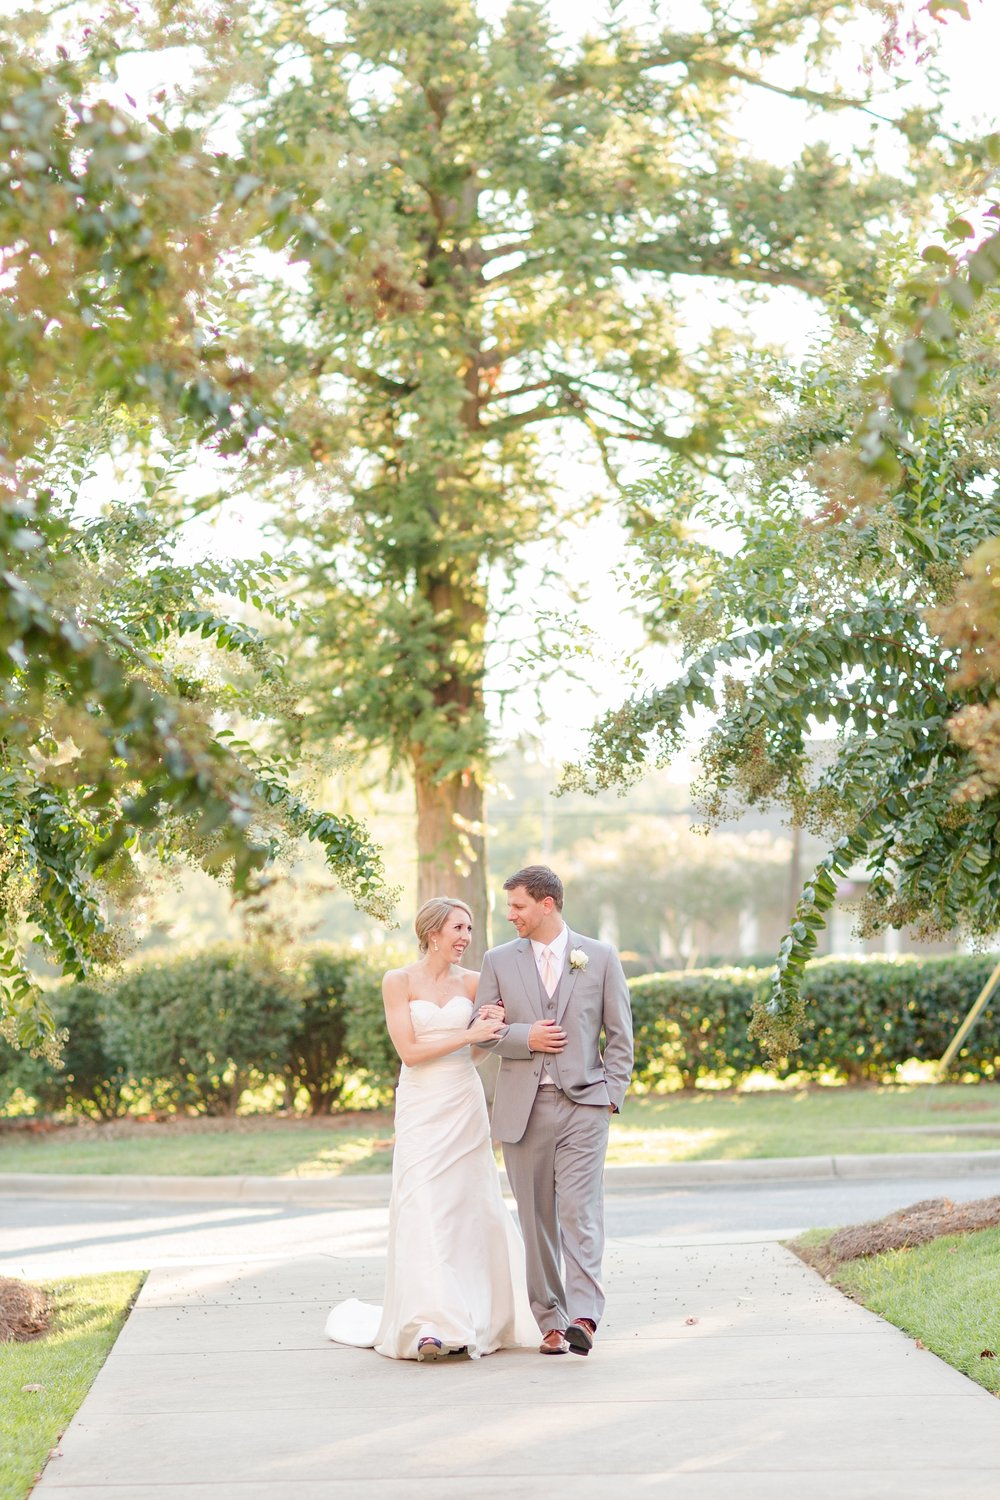 Diers 3-Bride & Groom Portraits-1069_anna grace photography charlotte north carolina wedding photographer photo.jpg